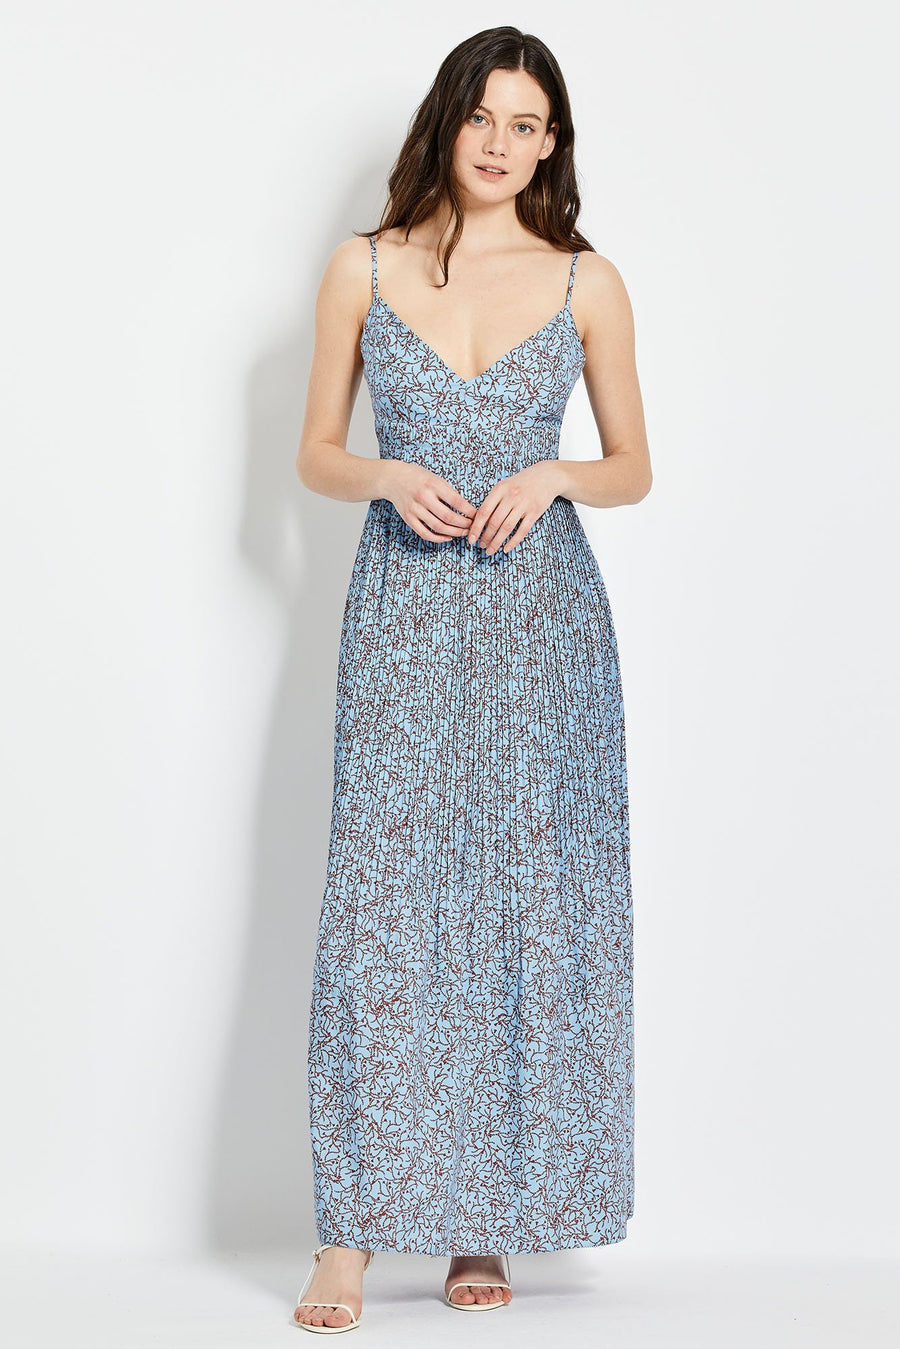 Susan Dress - Slate Blue Thyme Print